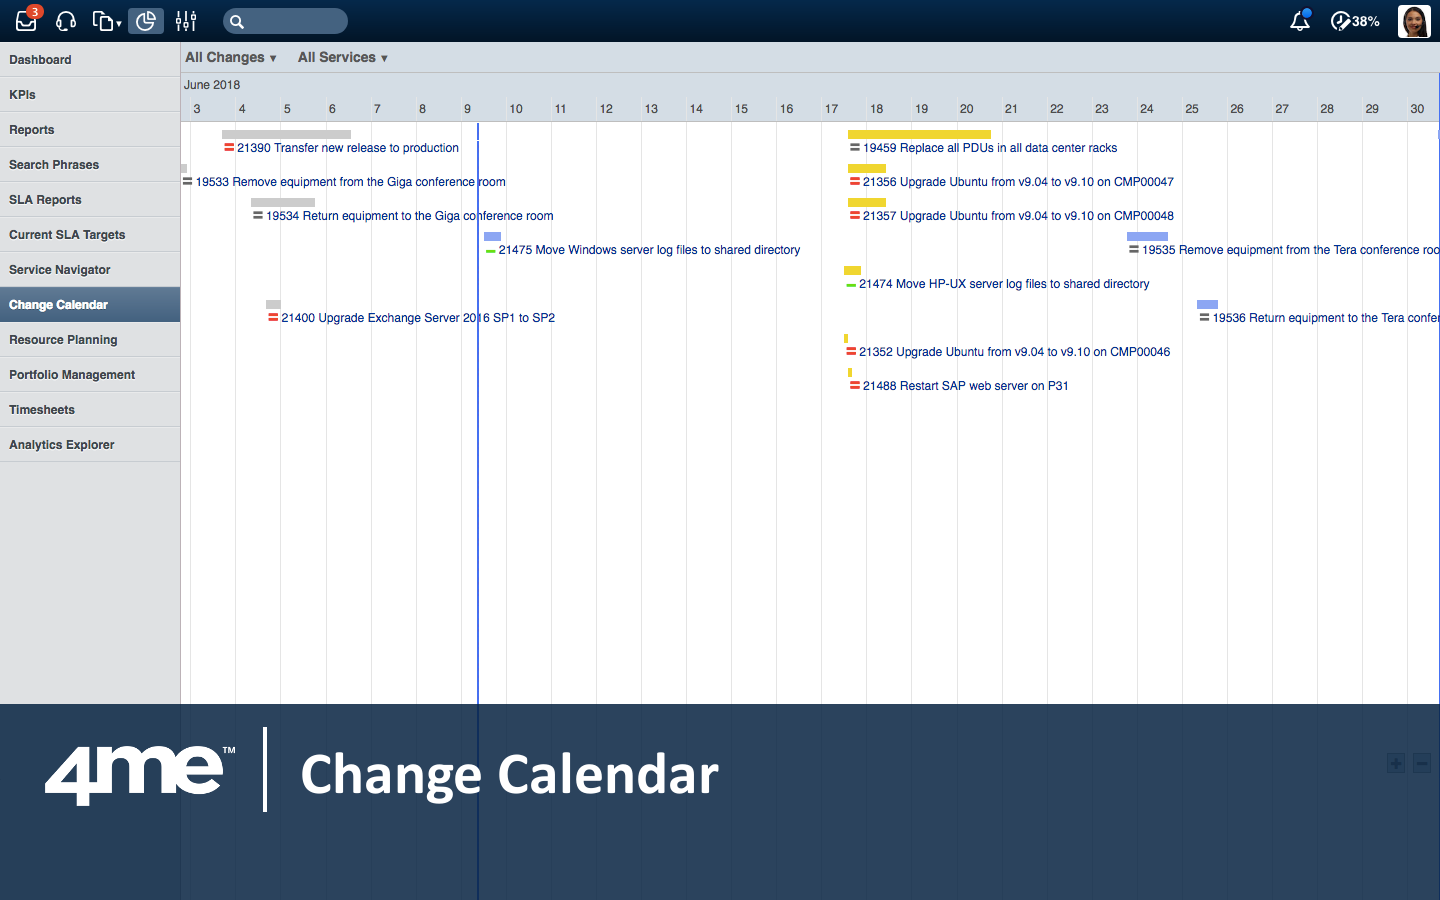 4me's change calendar automatically detects scheduling conflicts between changes.